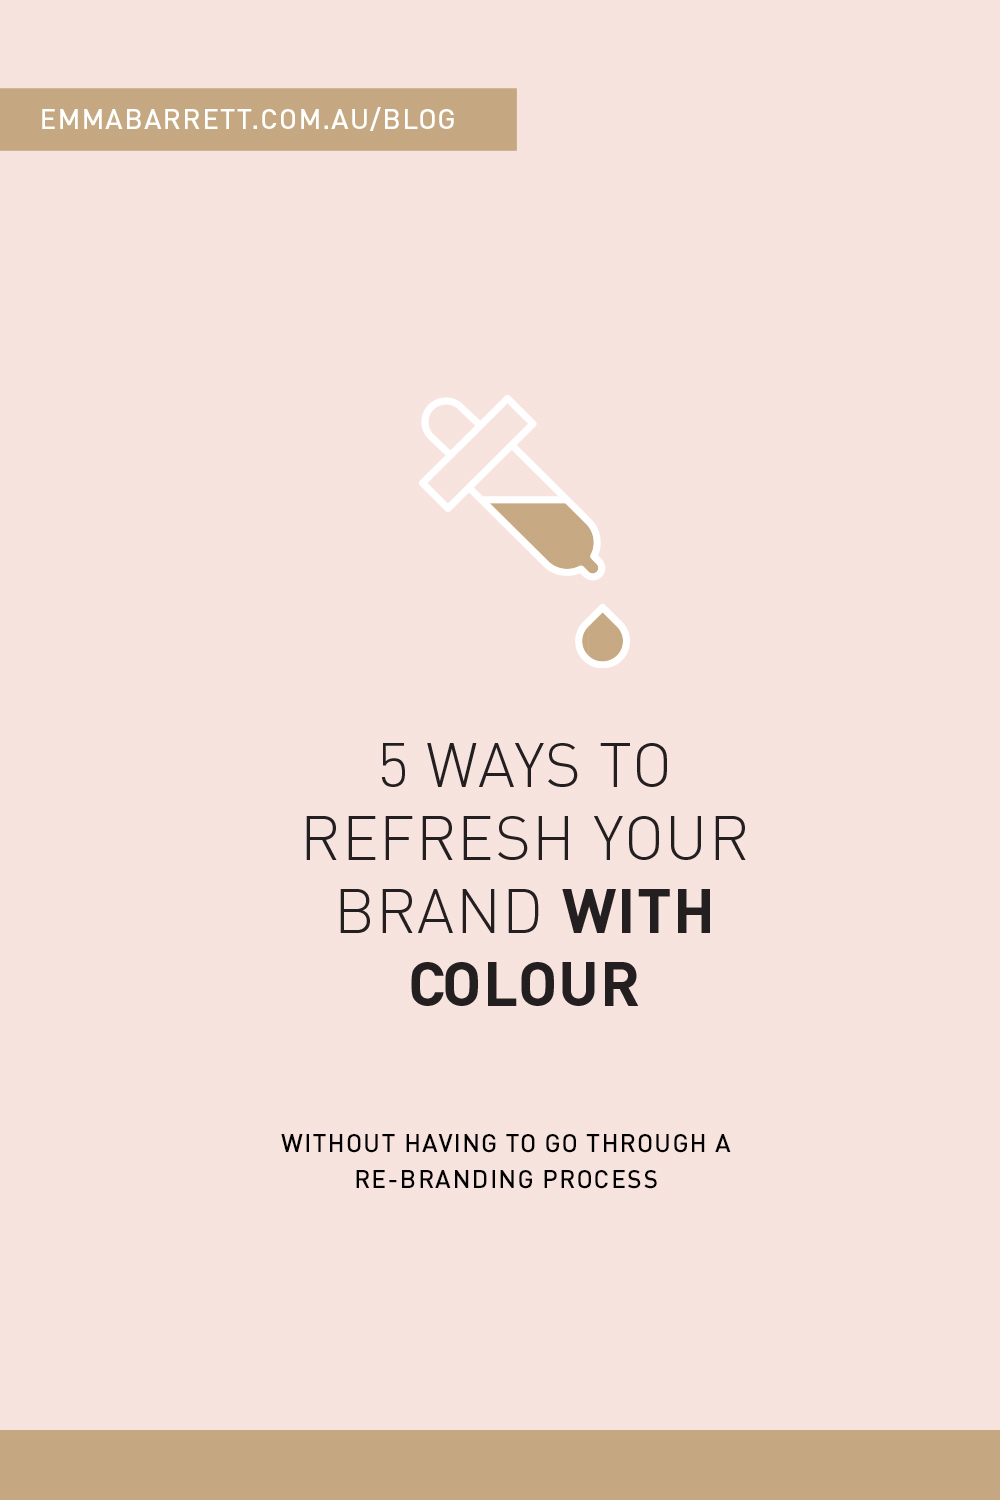 5-ways-to-refresh-with-colour_top.jpg